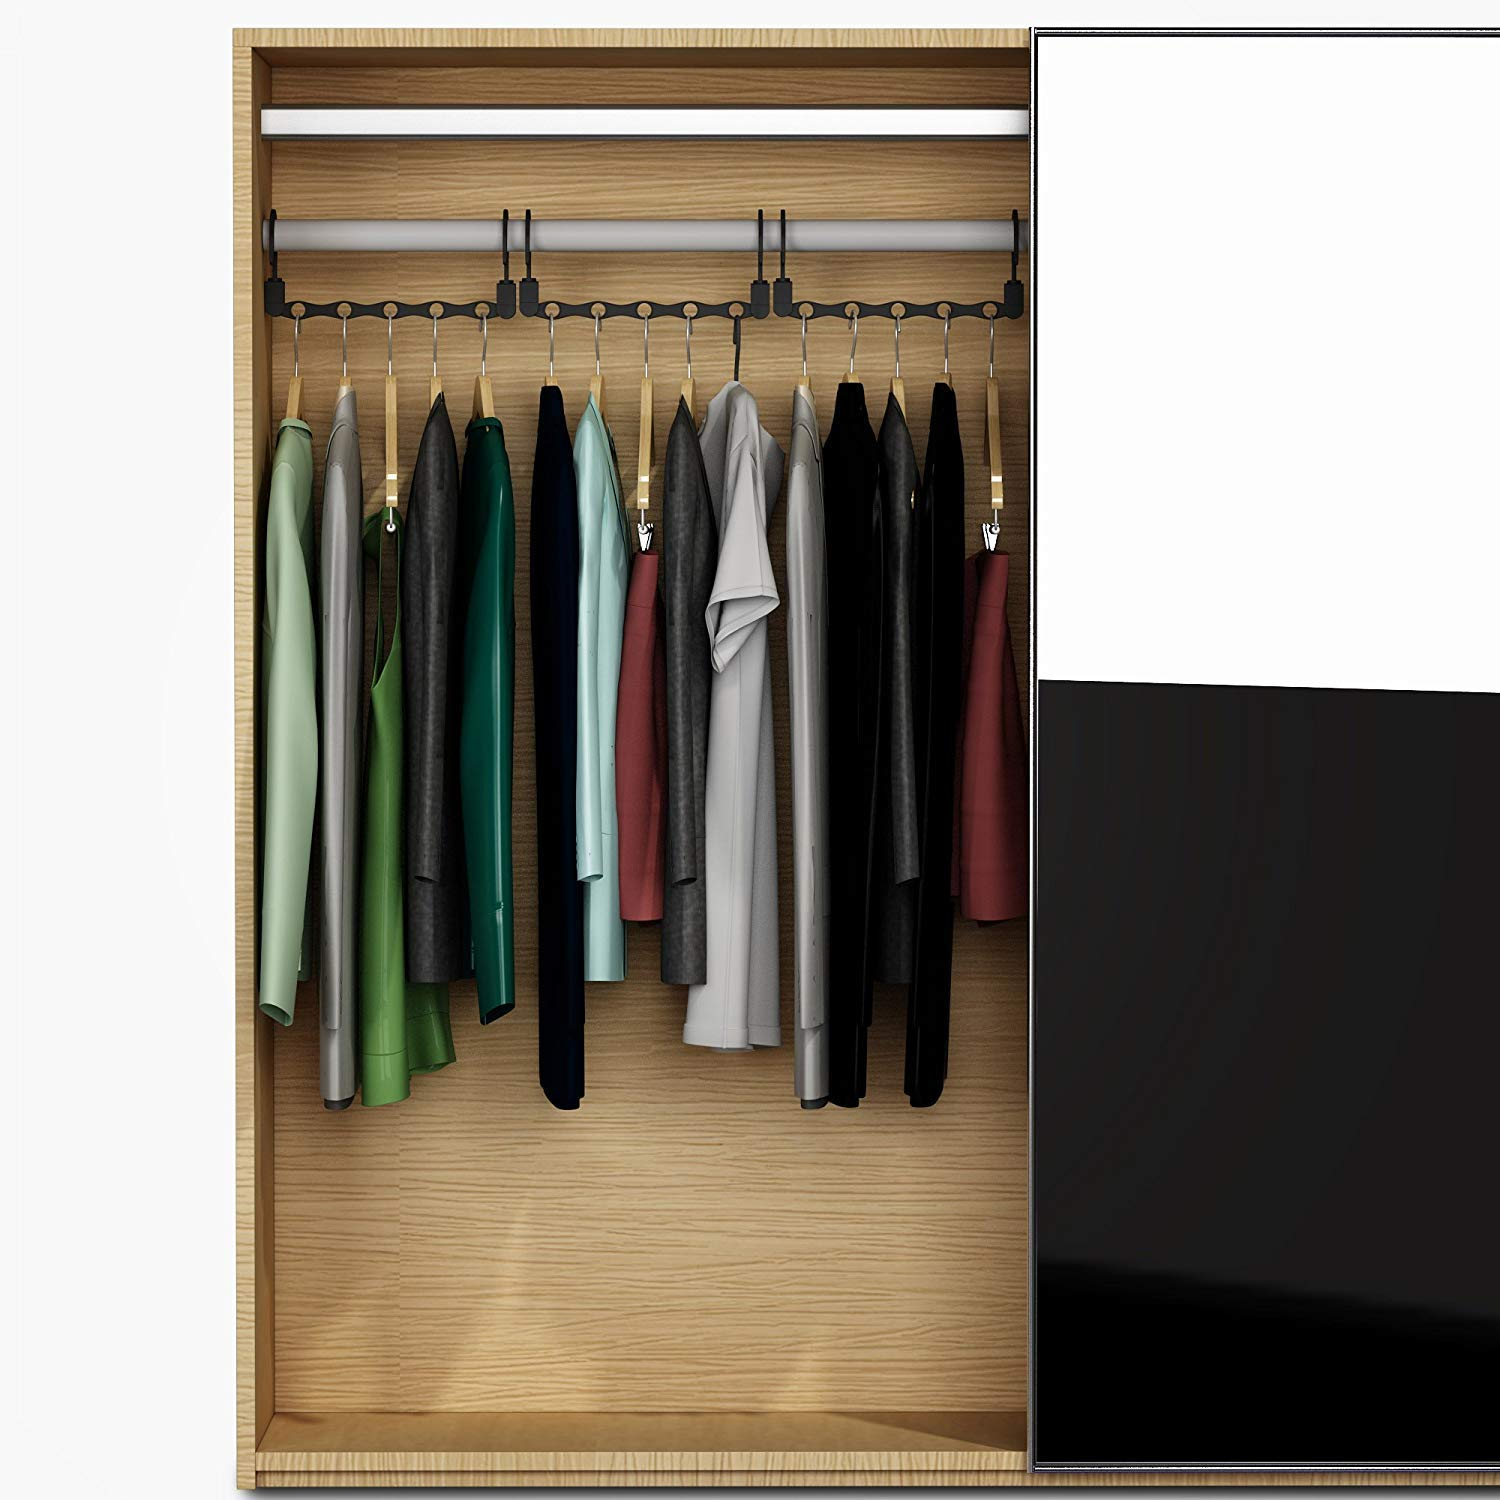 Armoire Multifunctional Cascading Clothing Organizers with Sturdy Plastic for Closet MoonFly Space Saving Magic Clothes Hangers 10 Pack Wardrobe Hanger Organizer Plastic, 10 Pack Cabinet